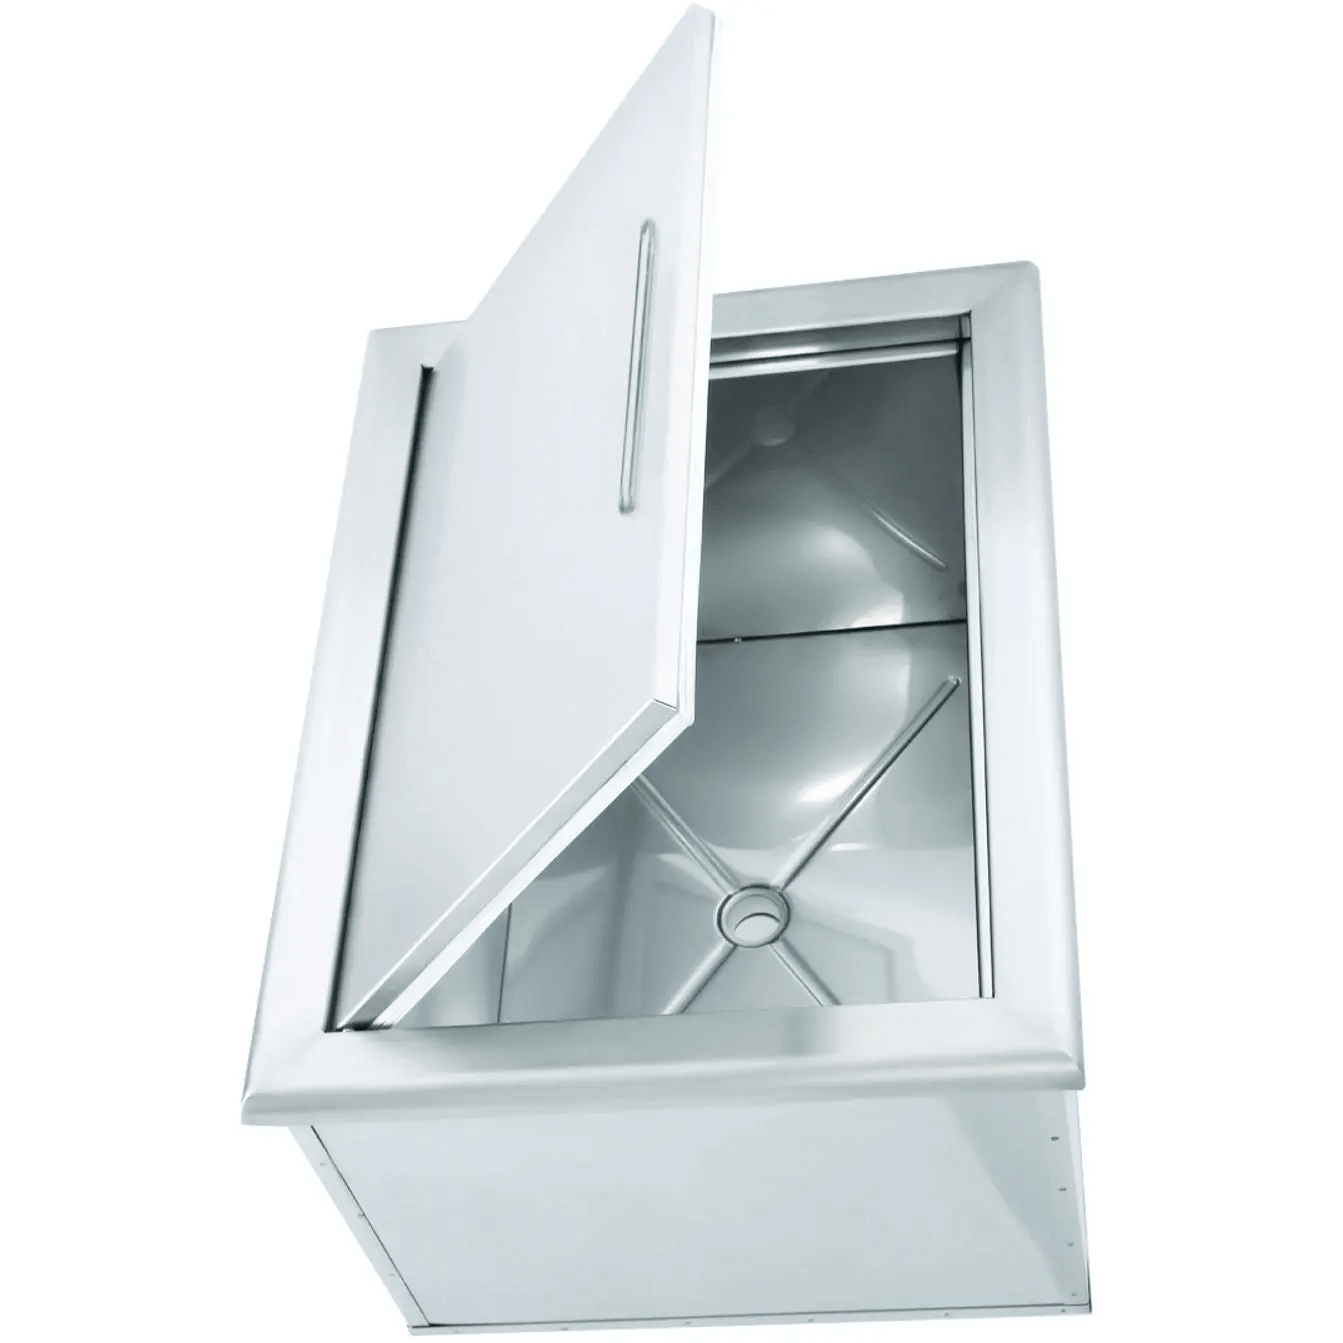 Stainless Steel Ice Bin Cooler/Wine Chiller in Outdoor Cabinets 6